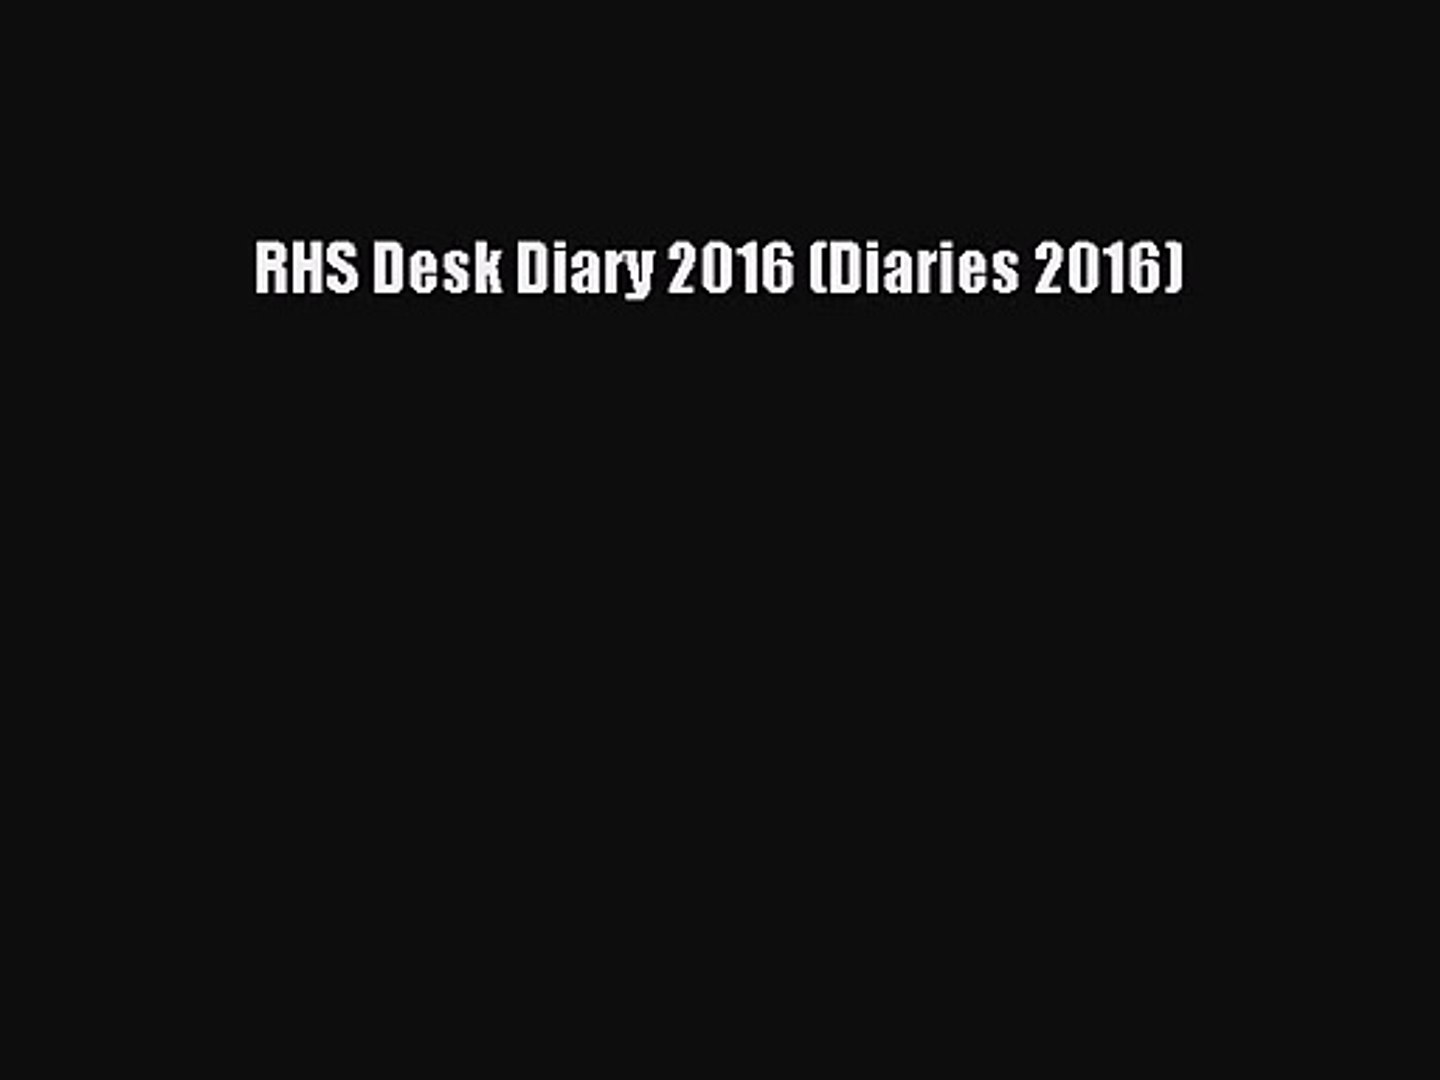 RHS Desk Diary 2016 (Diaries 2016) [PDF Download] RHS Desk Diary 2016 (Diaries 2016) [Read]